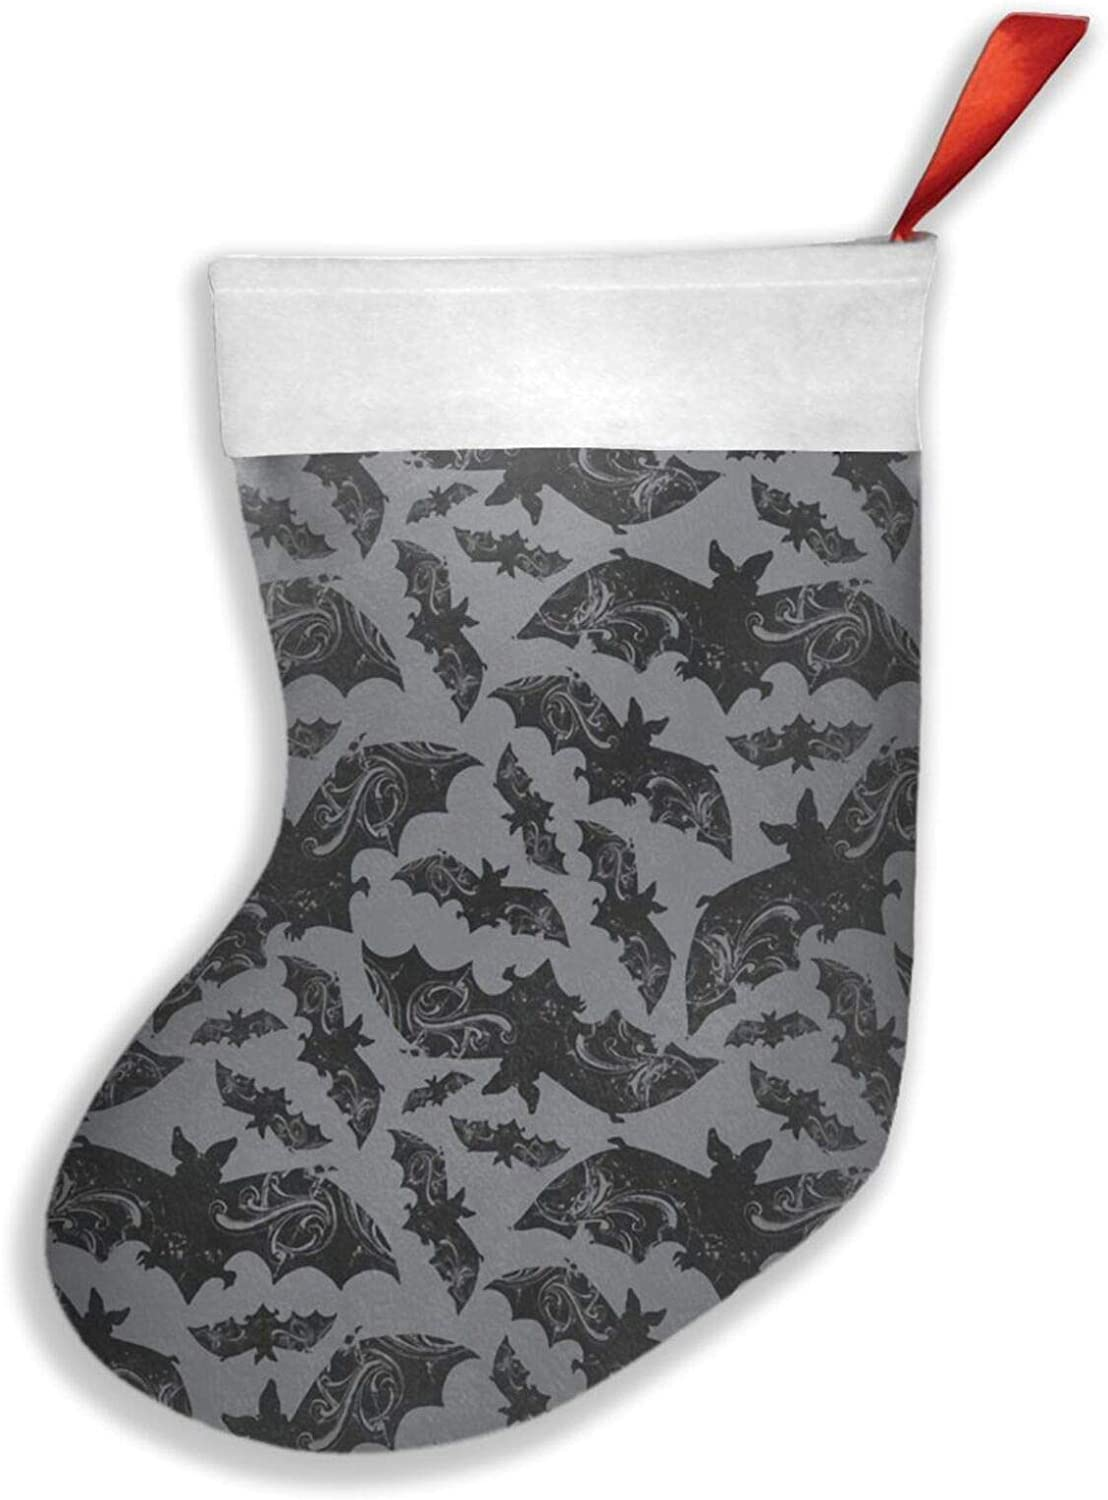 antkondnm Halloween Bats Christmas Christmas Stockings 16.5 Inches Decorations for Family Holiday Xmas Party Decor